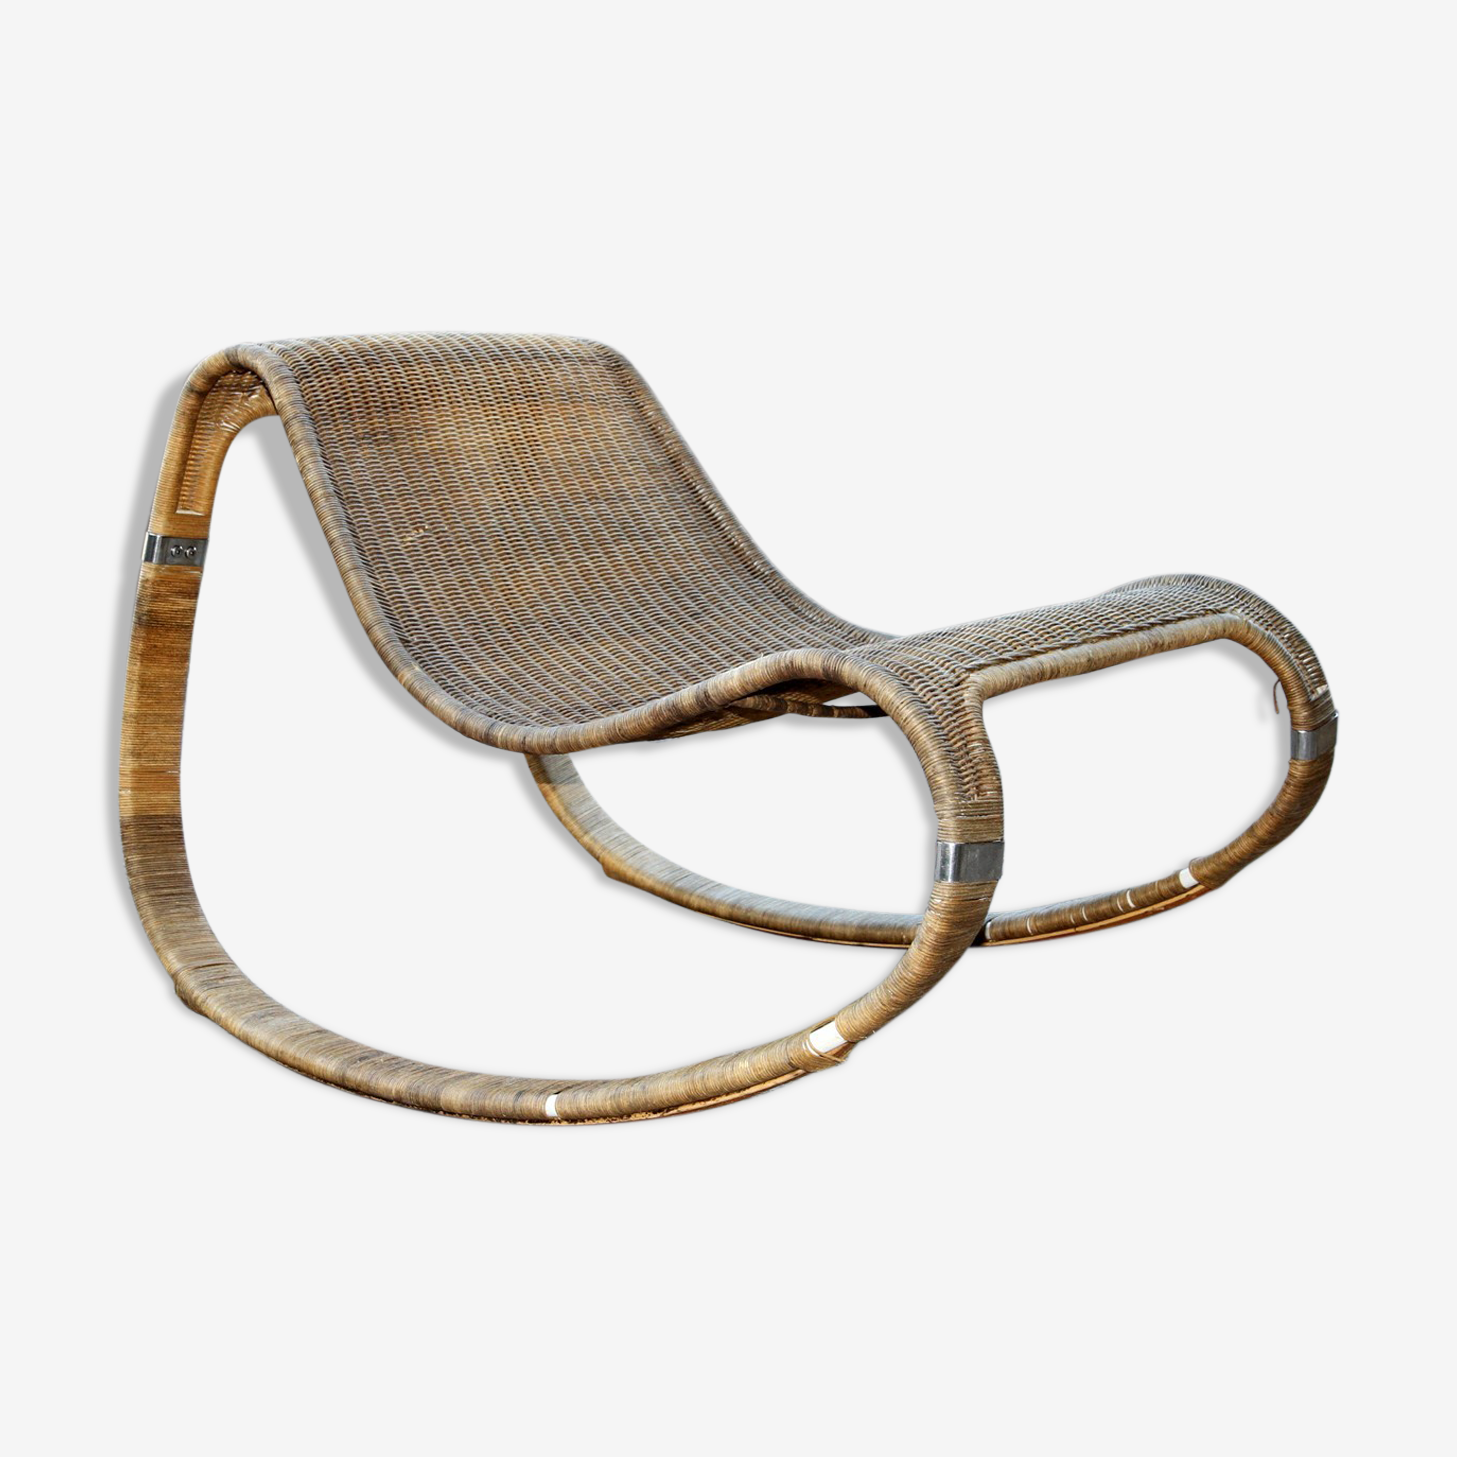 Rocking-chair en osier